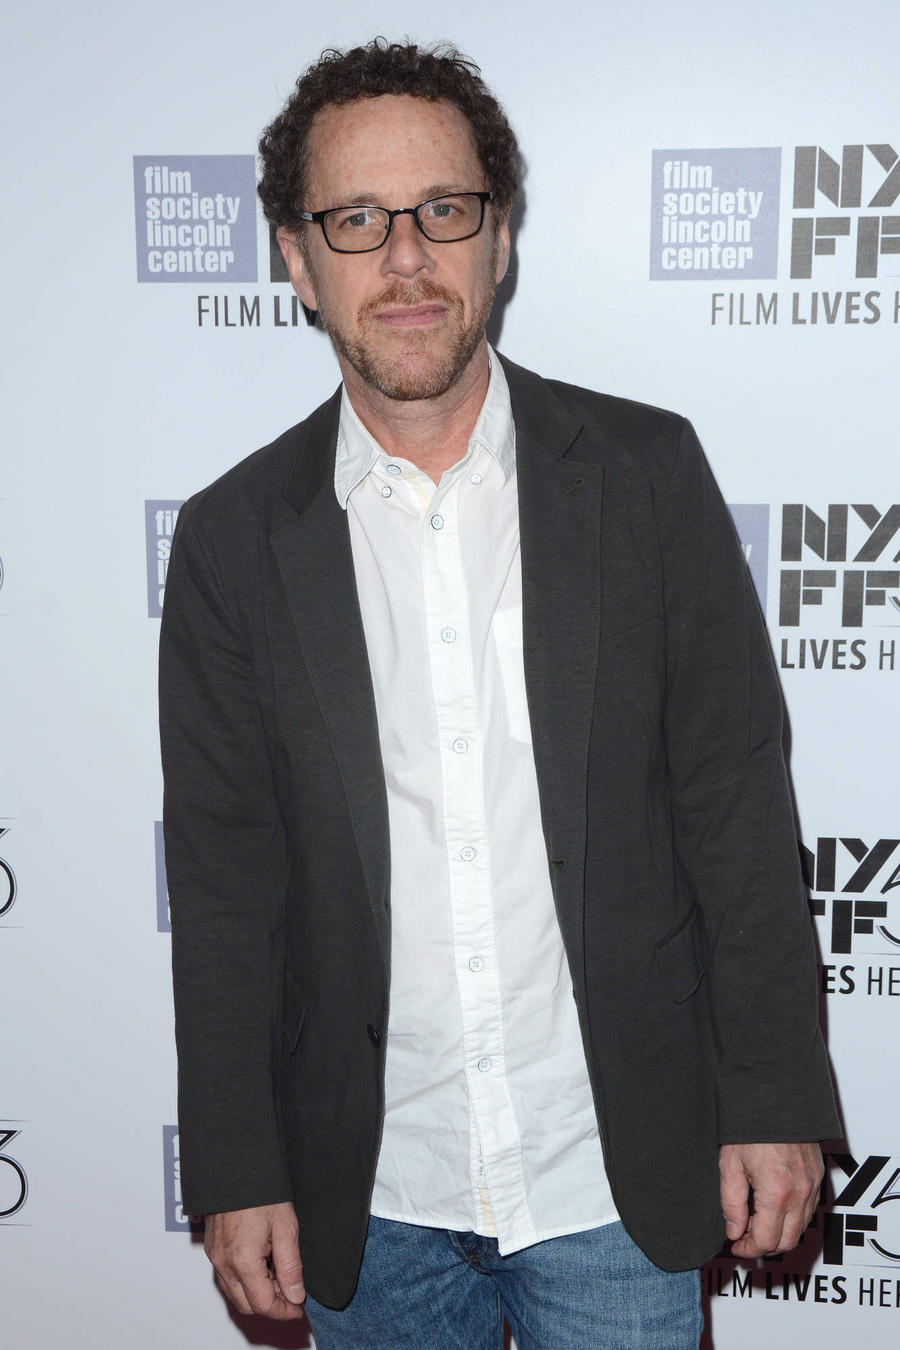 Ethan Coen Asks President Trump To Appoint Him Poet Laureate